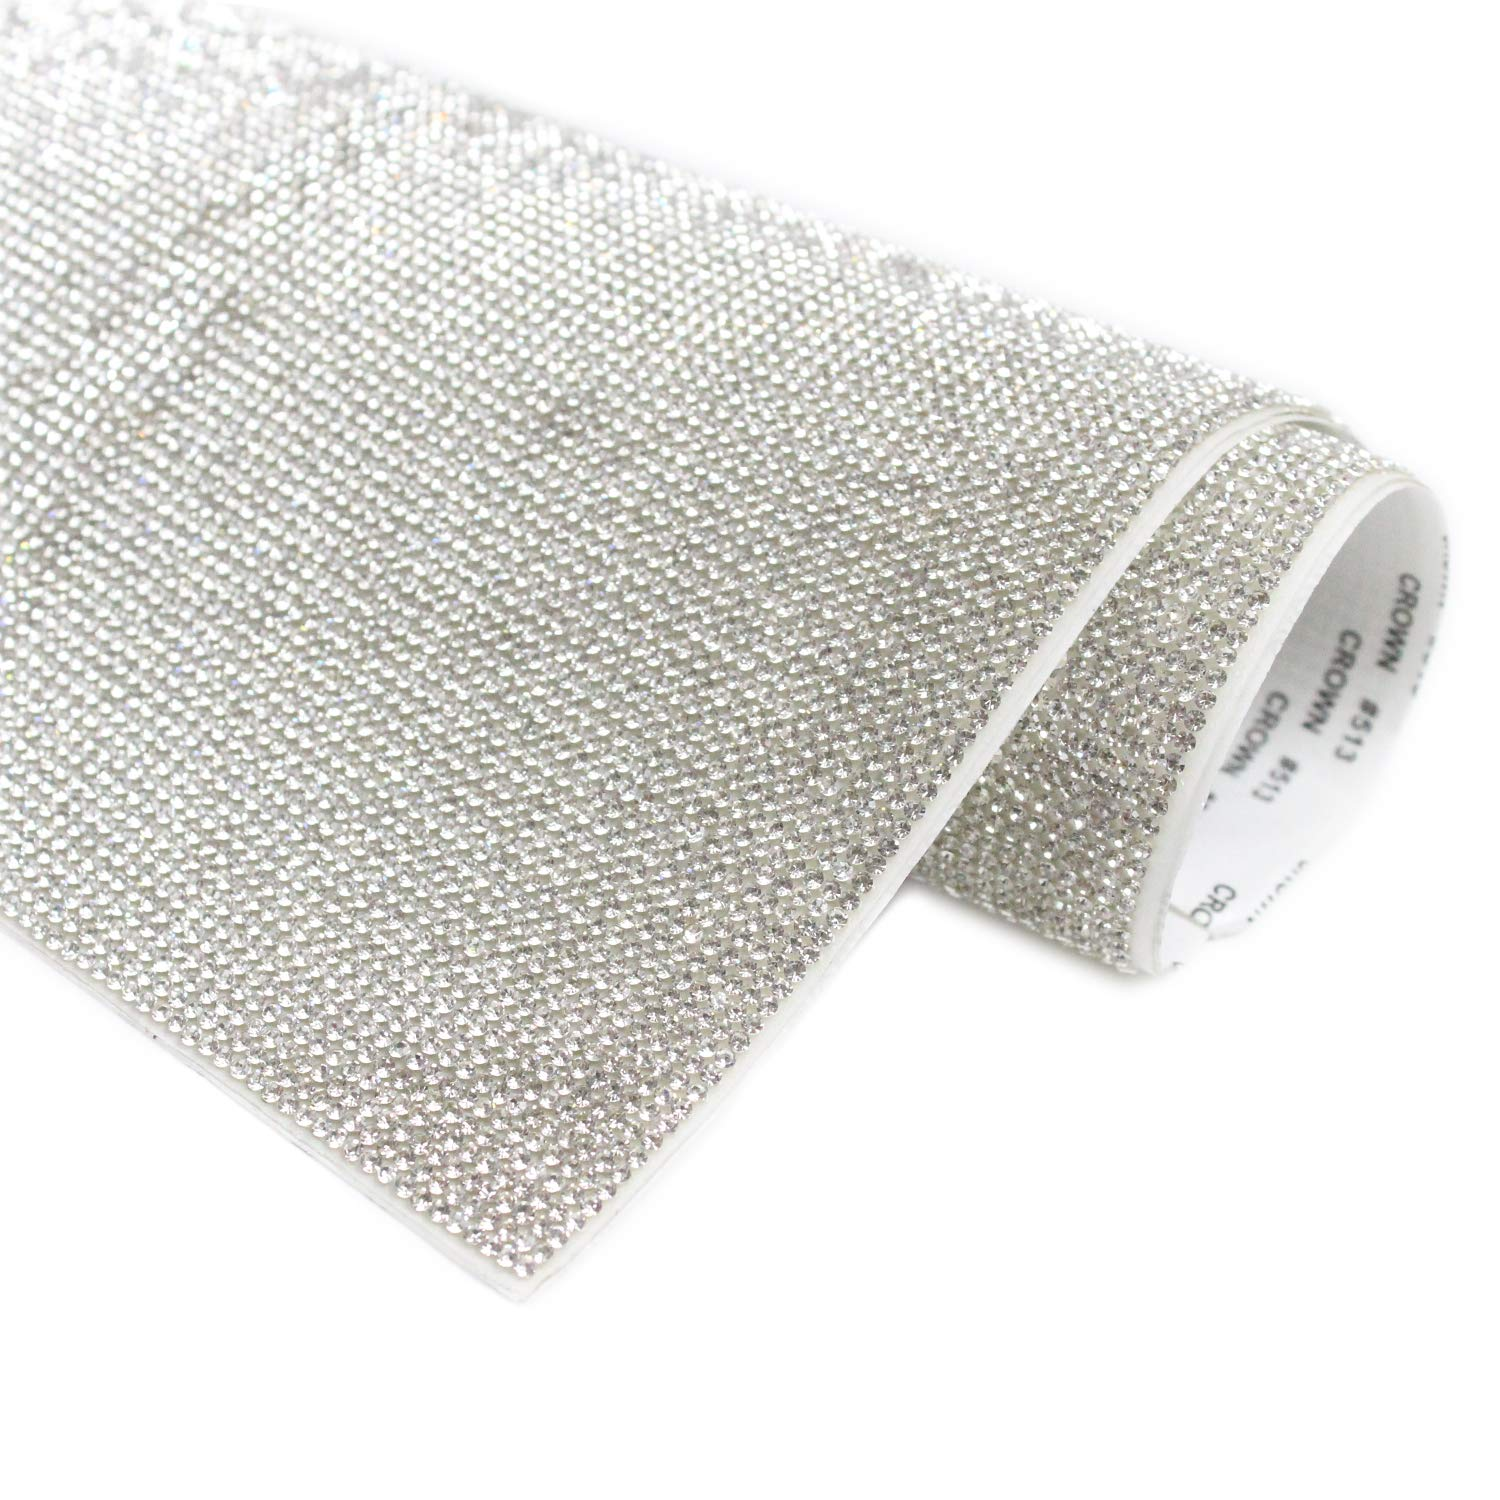 Self-adhesive Crystal rhinestone stickers sheet